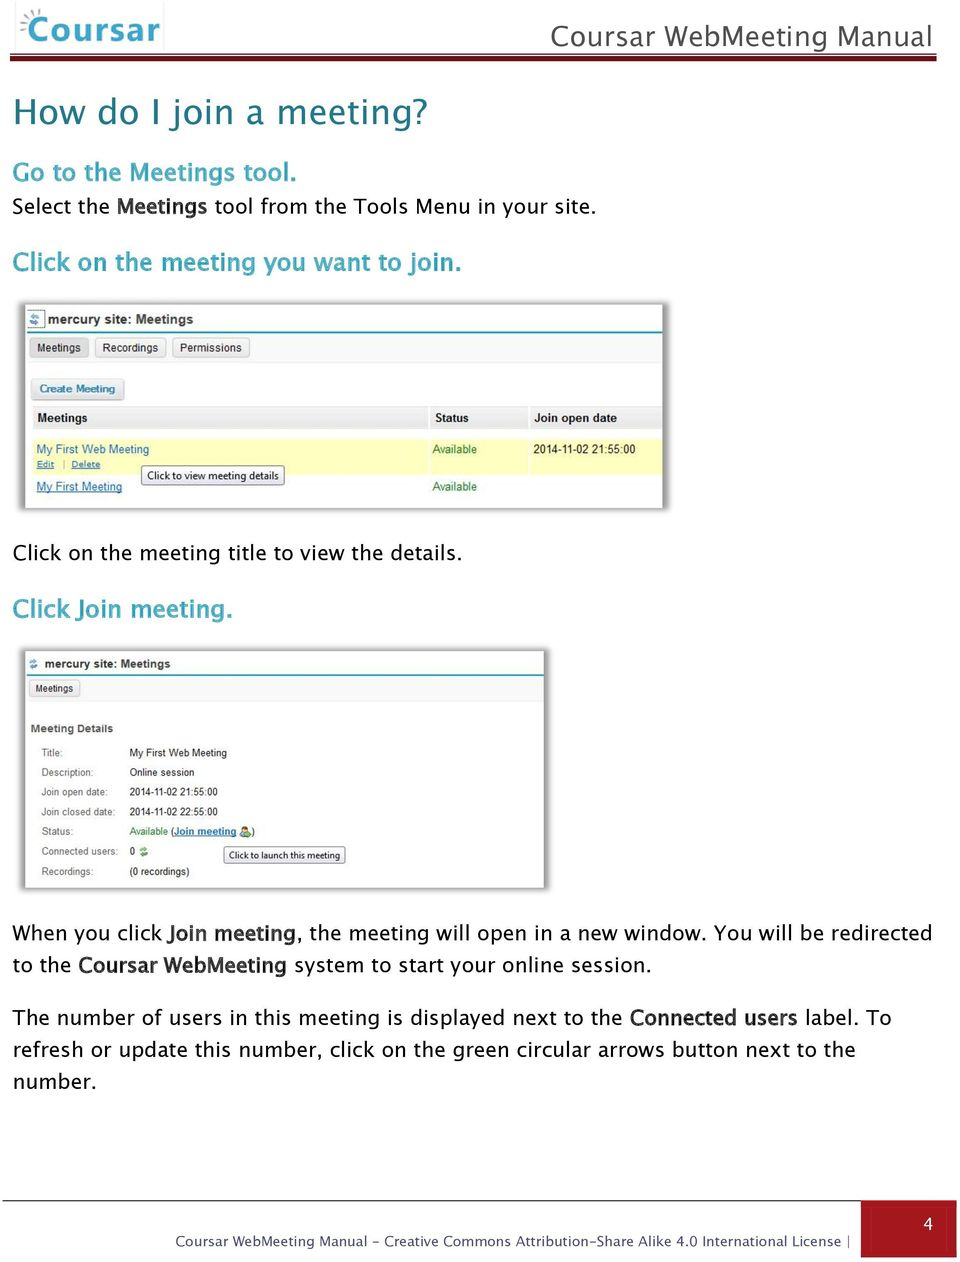 When you click Join meeting, the meeting will open in a new window.